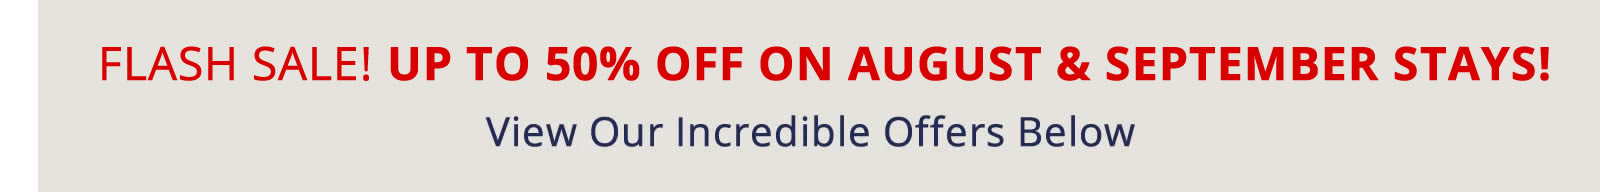 FLASH SALE! UP TO 50% OFF ON AUGUST AND SEPTEMBER STAYS!